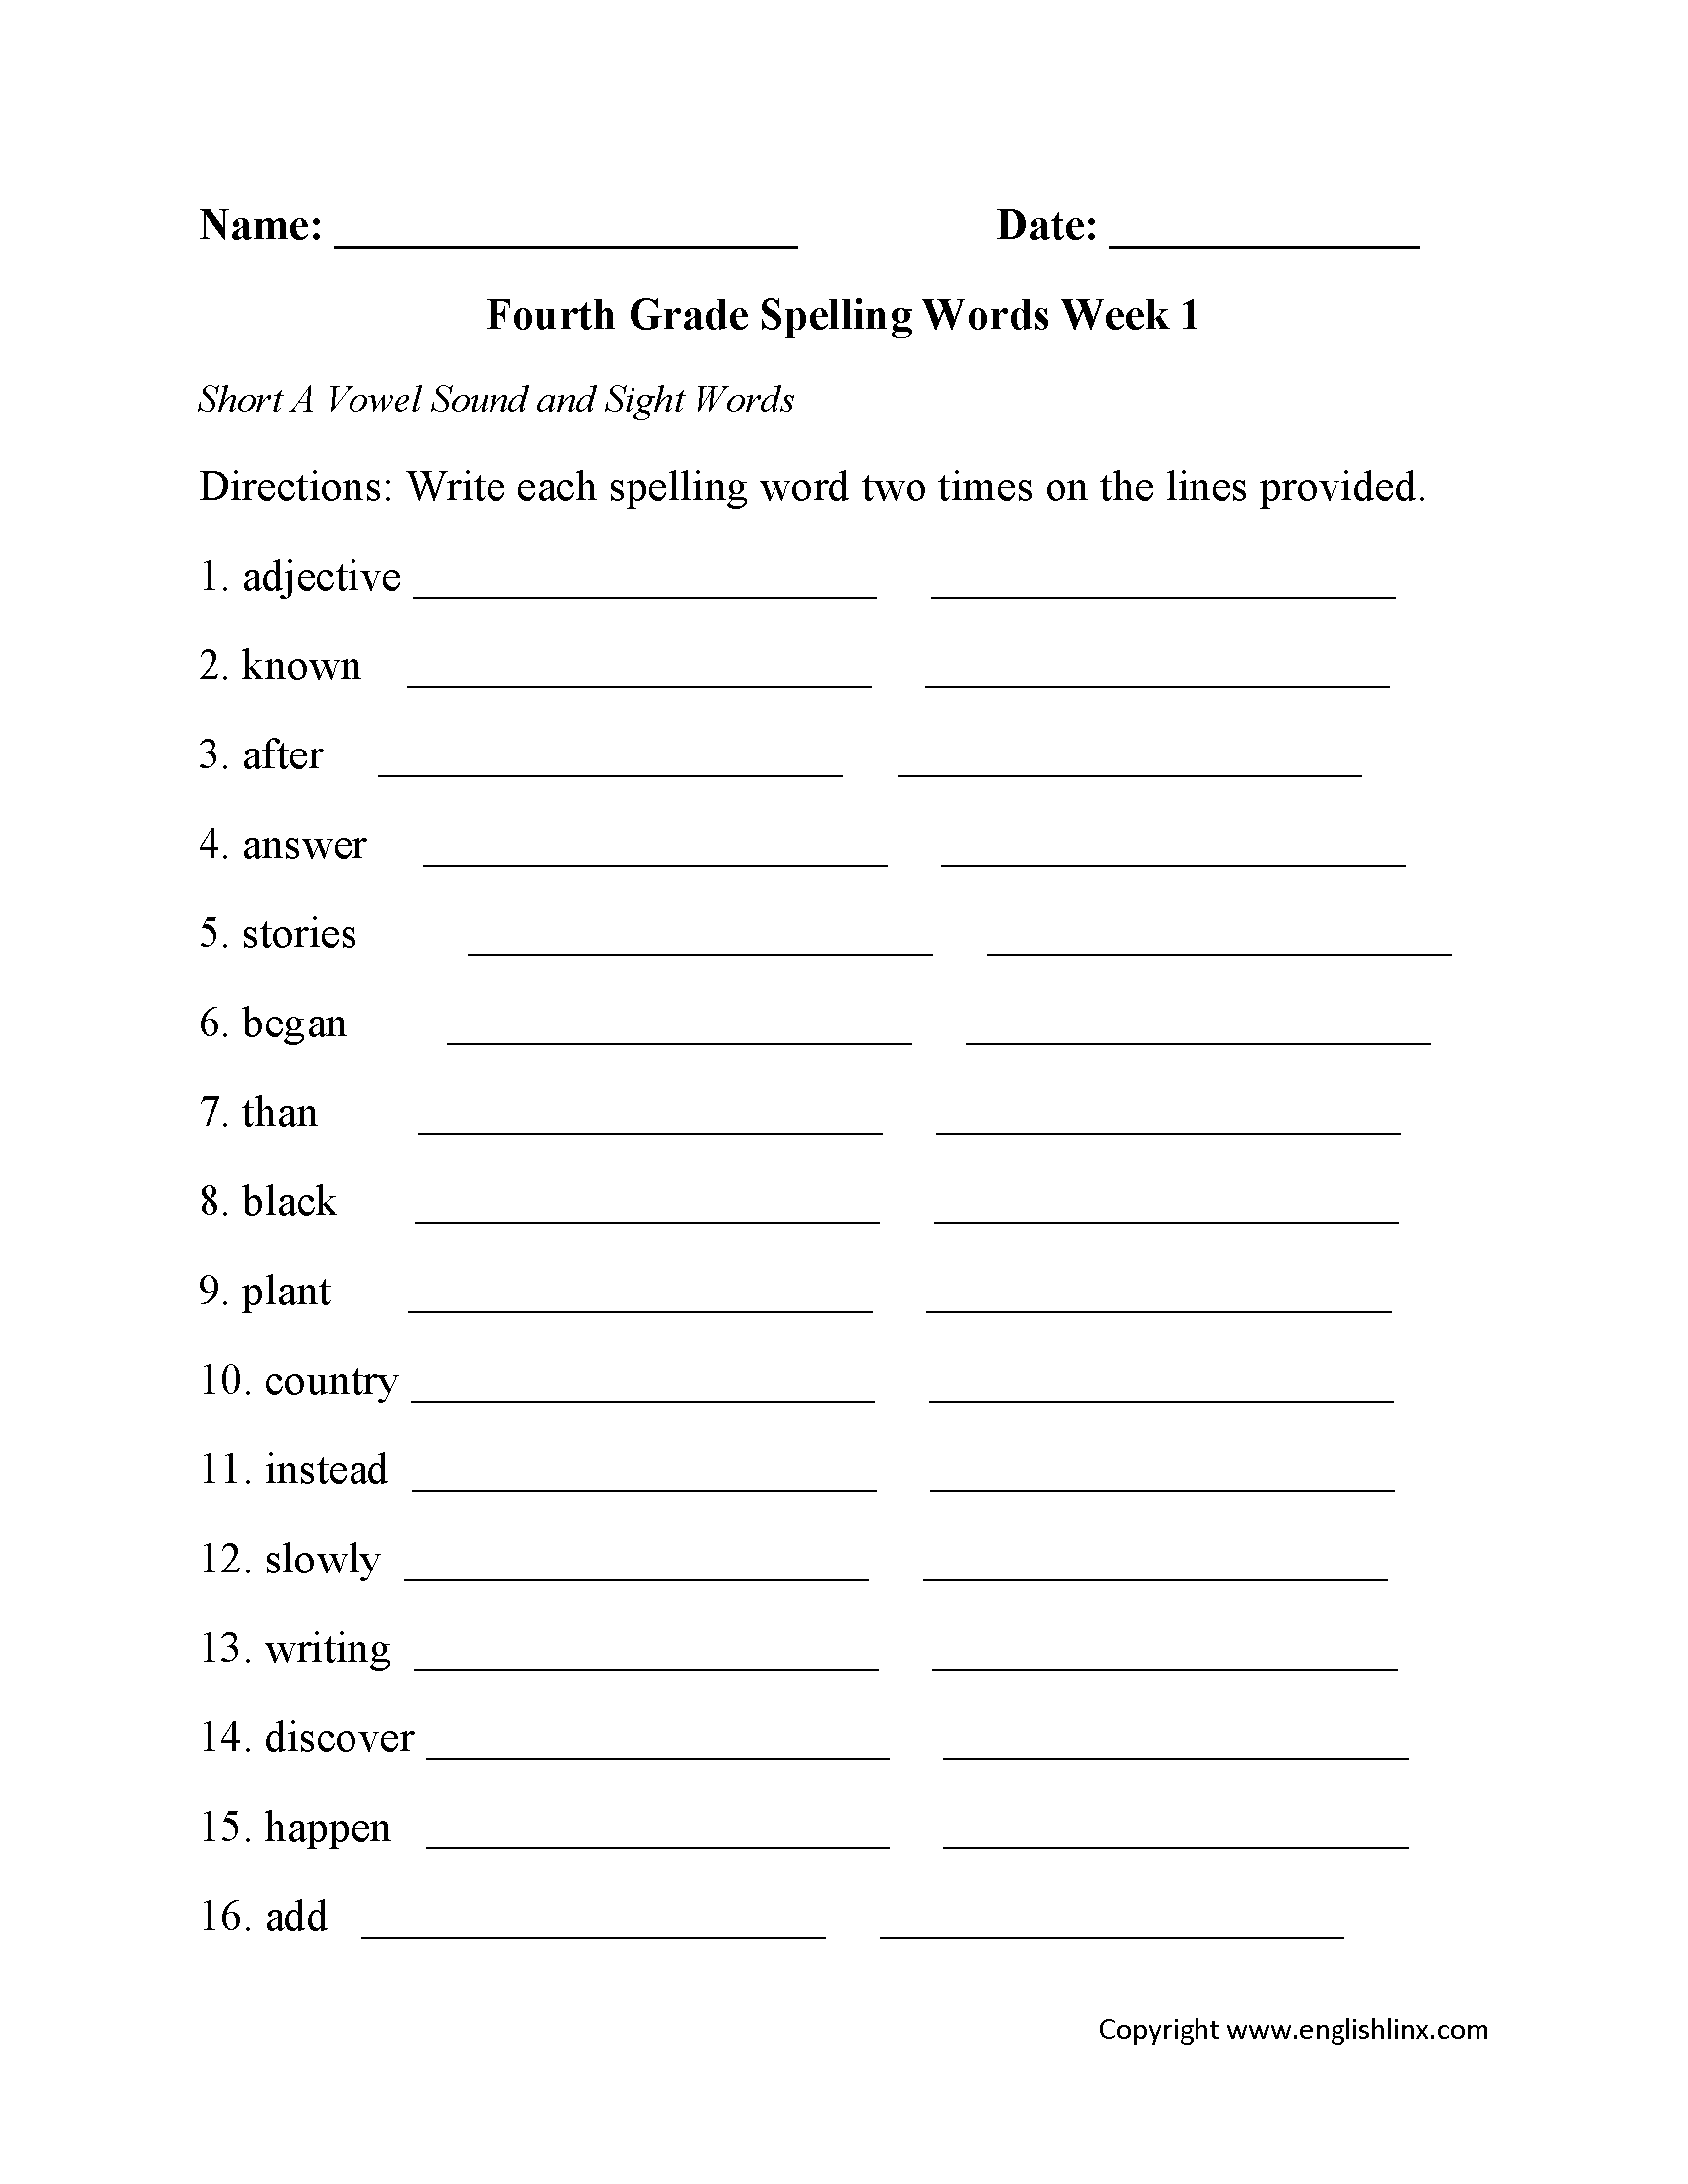 Printables Spelling Worksheets 4th Grade spelling worksheets fourth grade worksheets